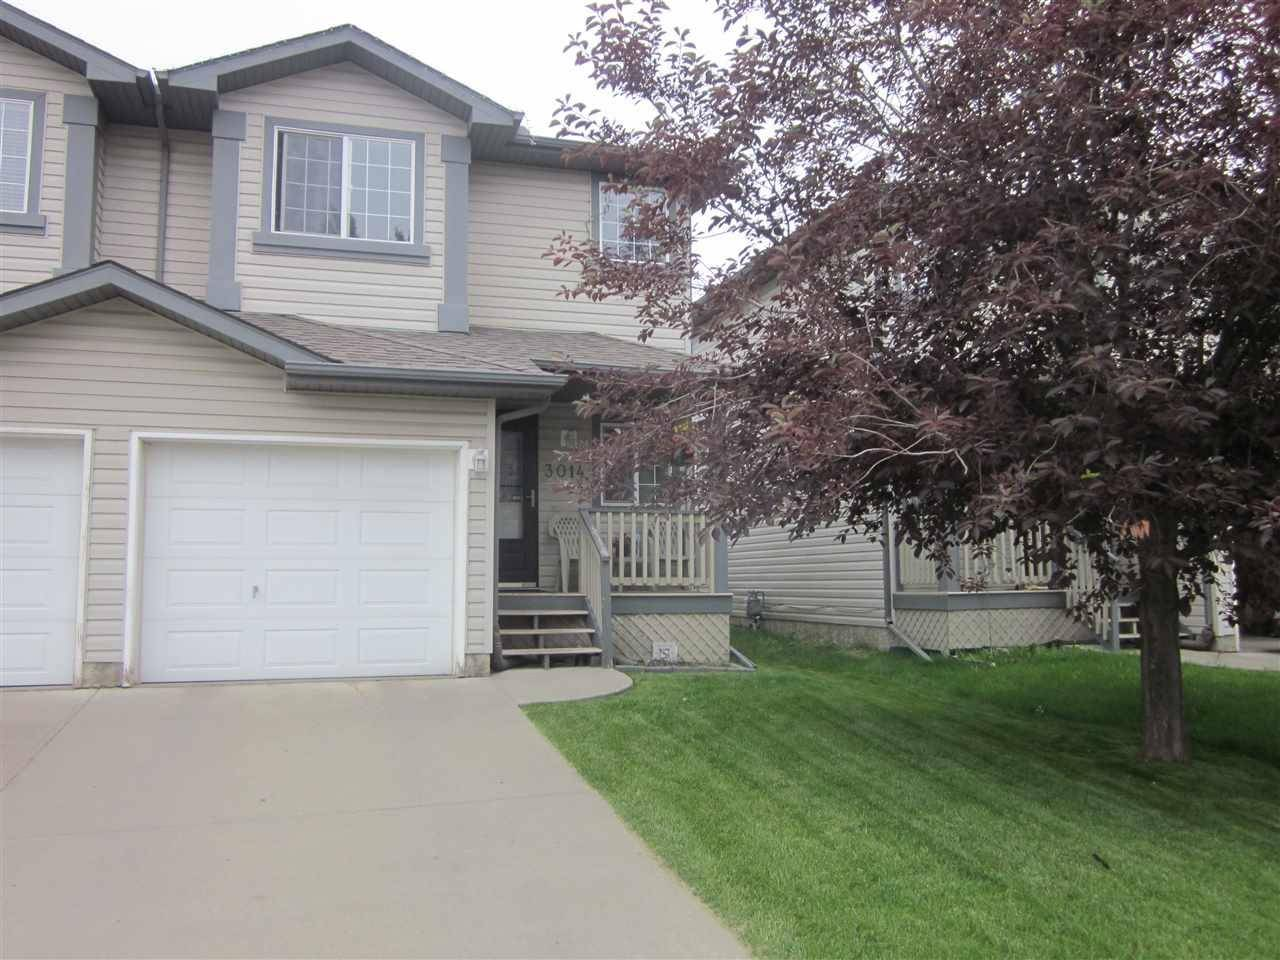 Townhouse for sale at 3014 30 Ave Nw Edmonton Alberta - MLS: E4174226